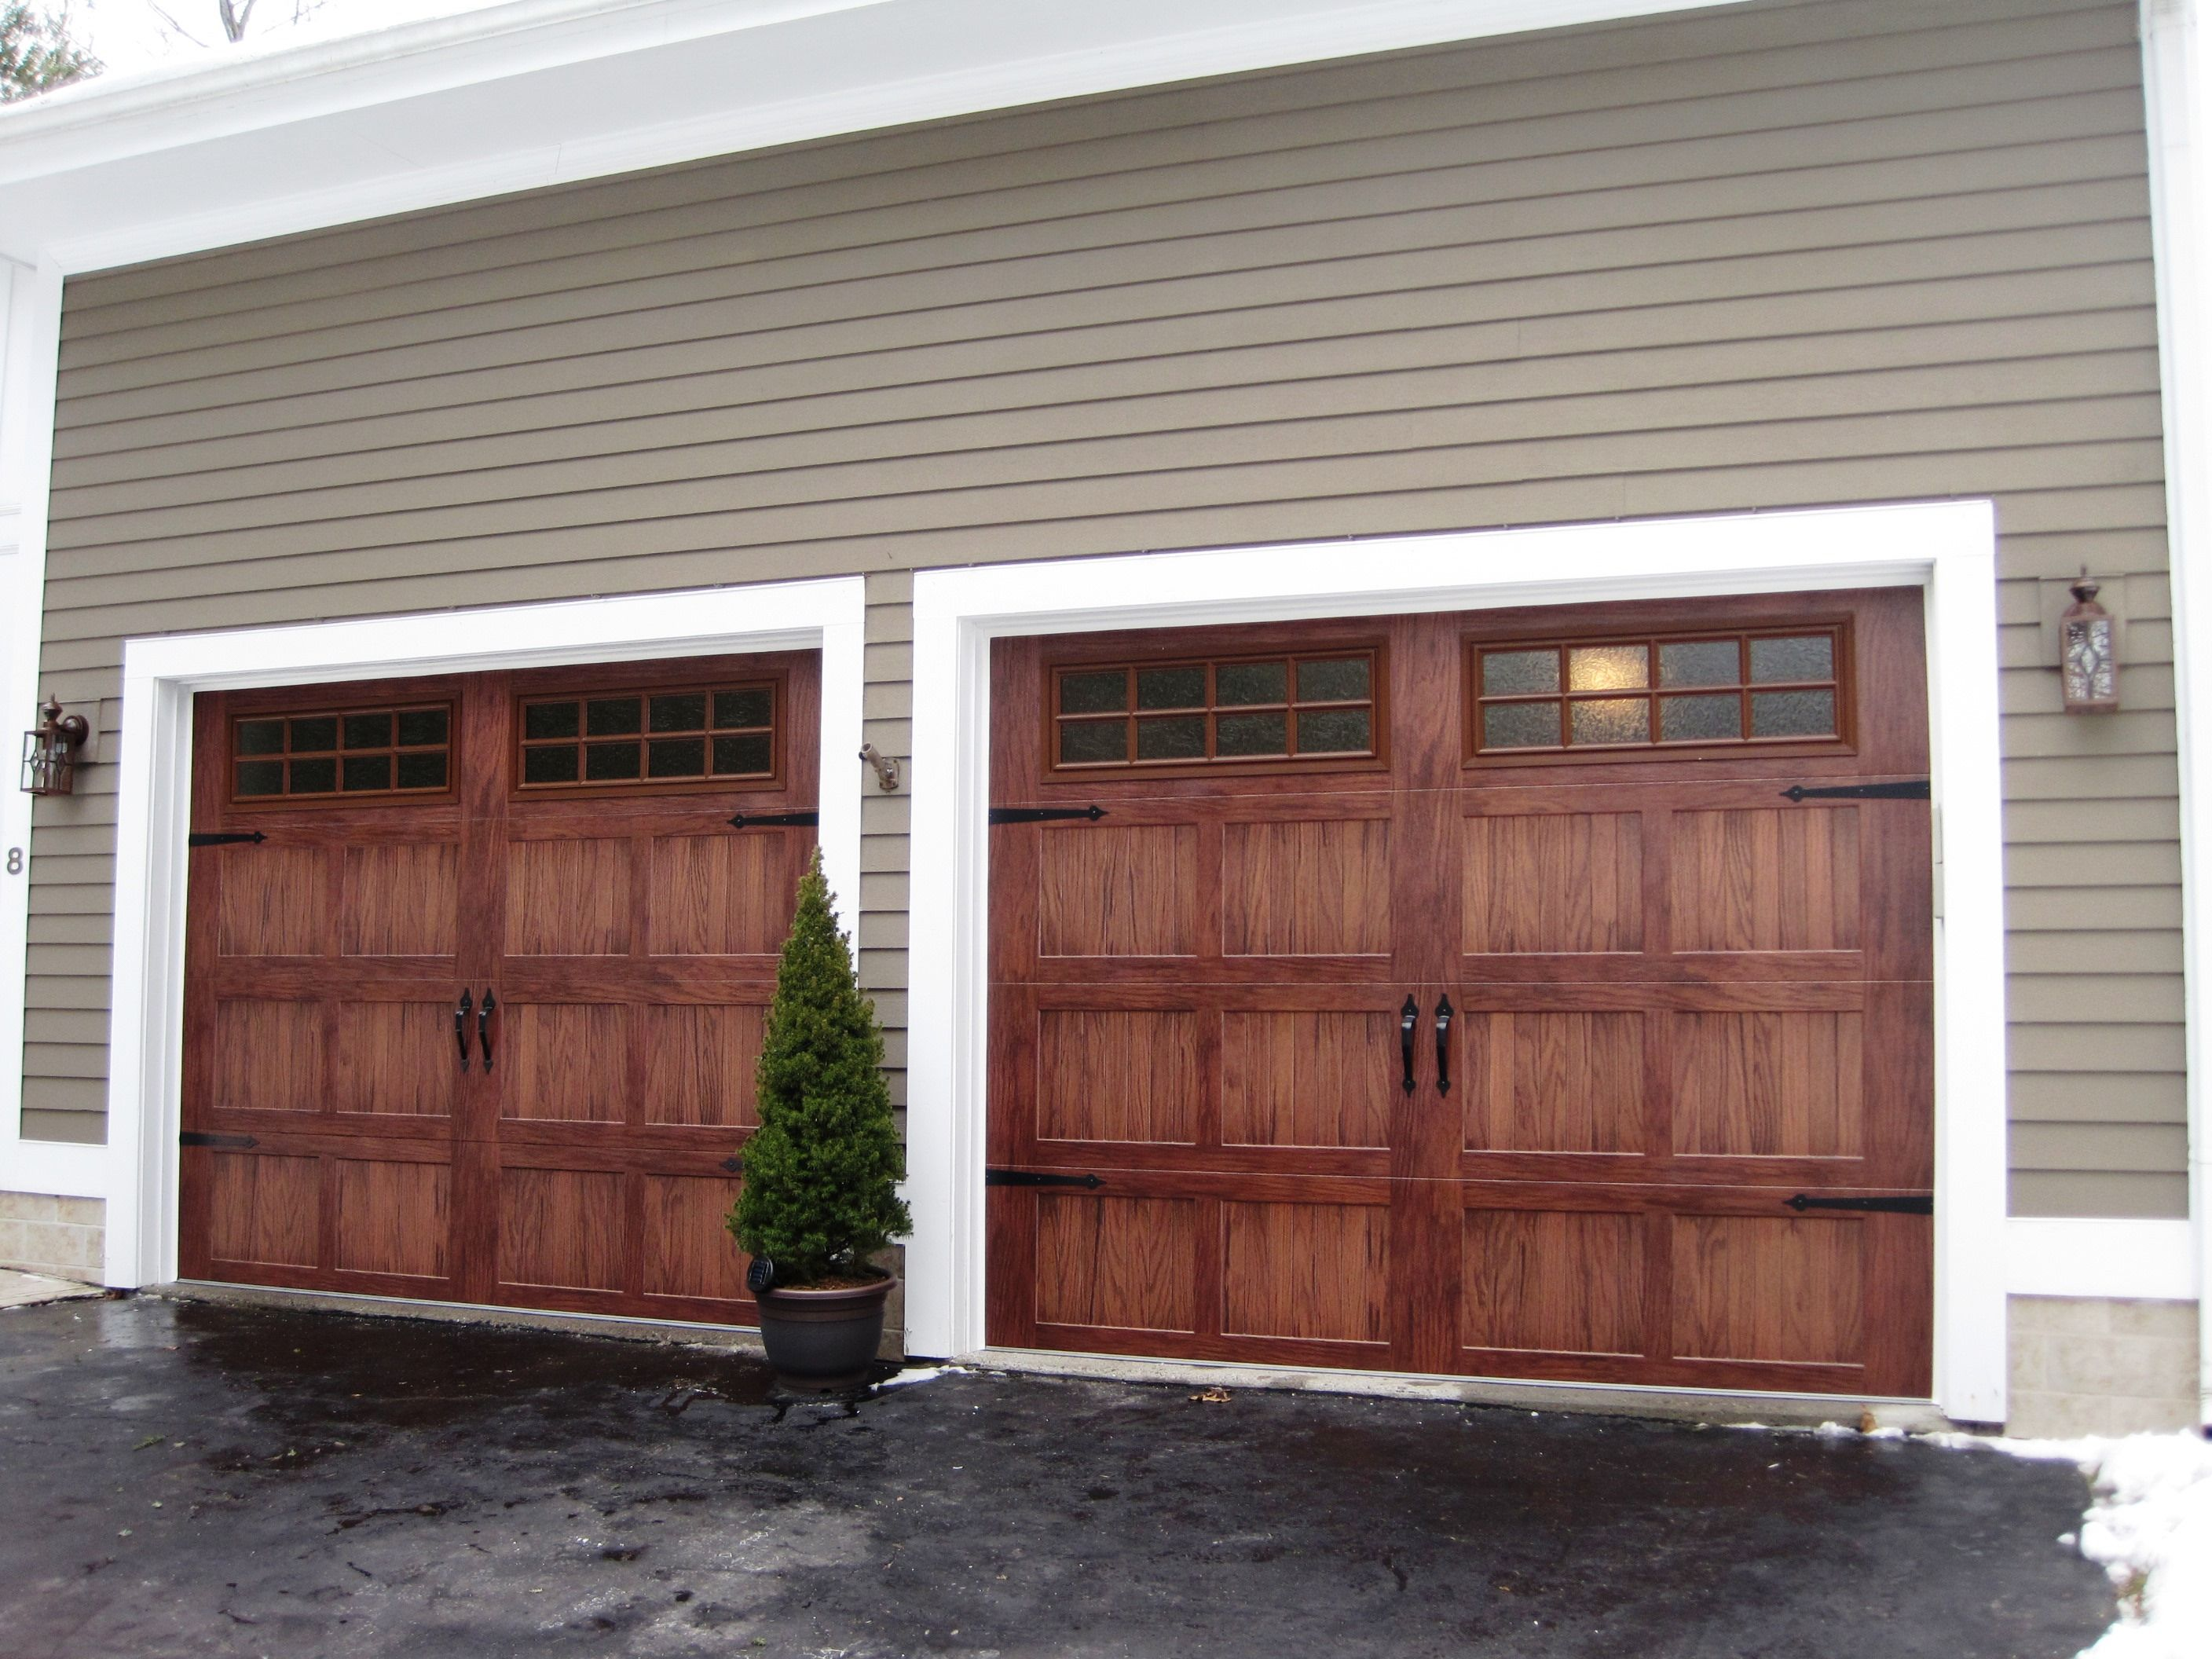 Garage Carriage House Garage Door Hinges Brown Carriage Garage Garage Door Styles Garage Doors Vinyl Garage Doors